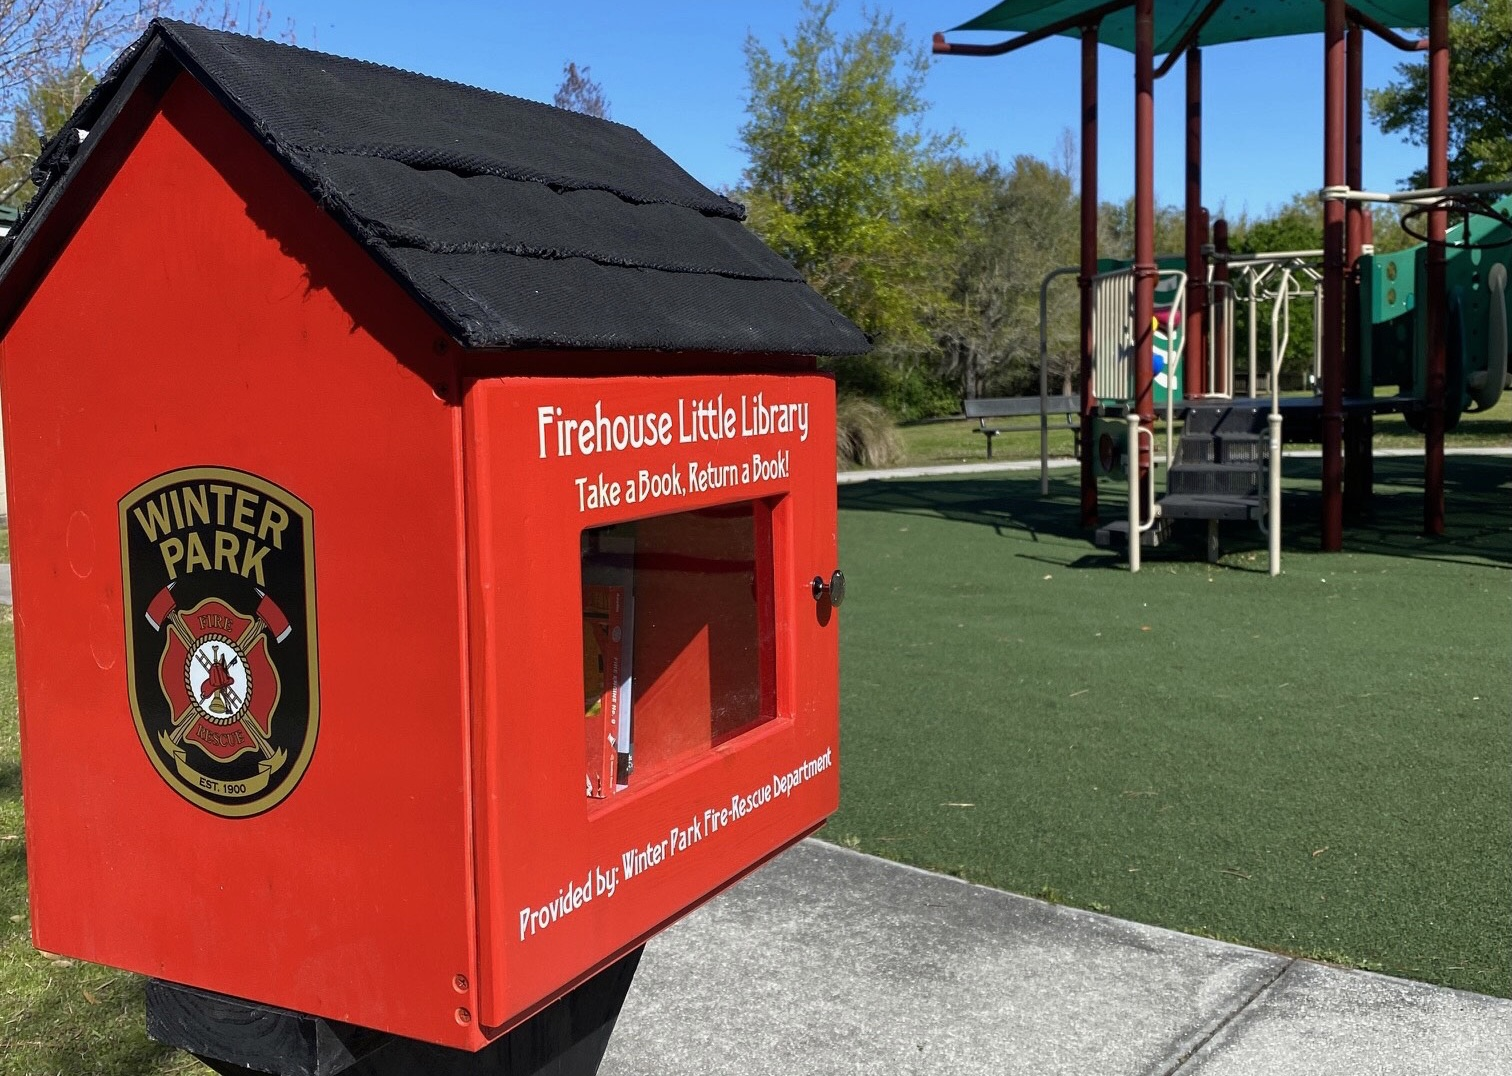 A red little library shows the Winter Park Fire-Rescue Department badge and there is a playground in the background.